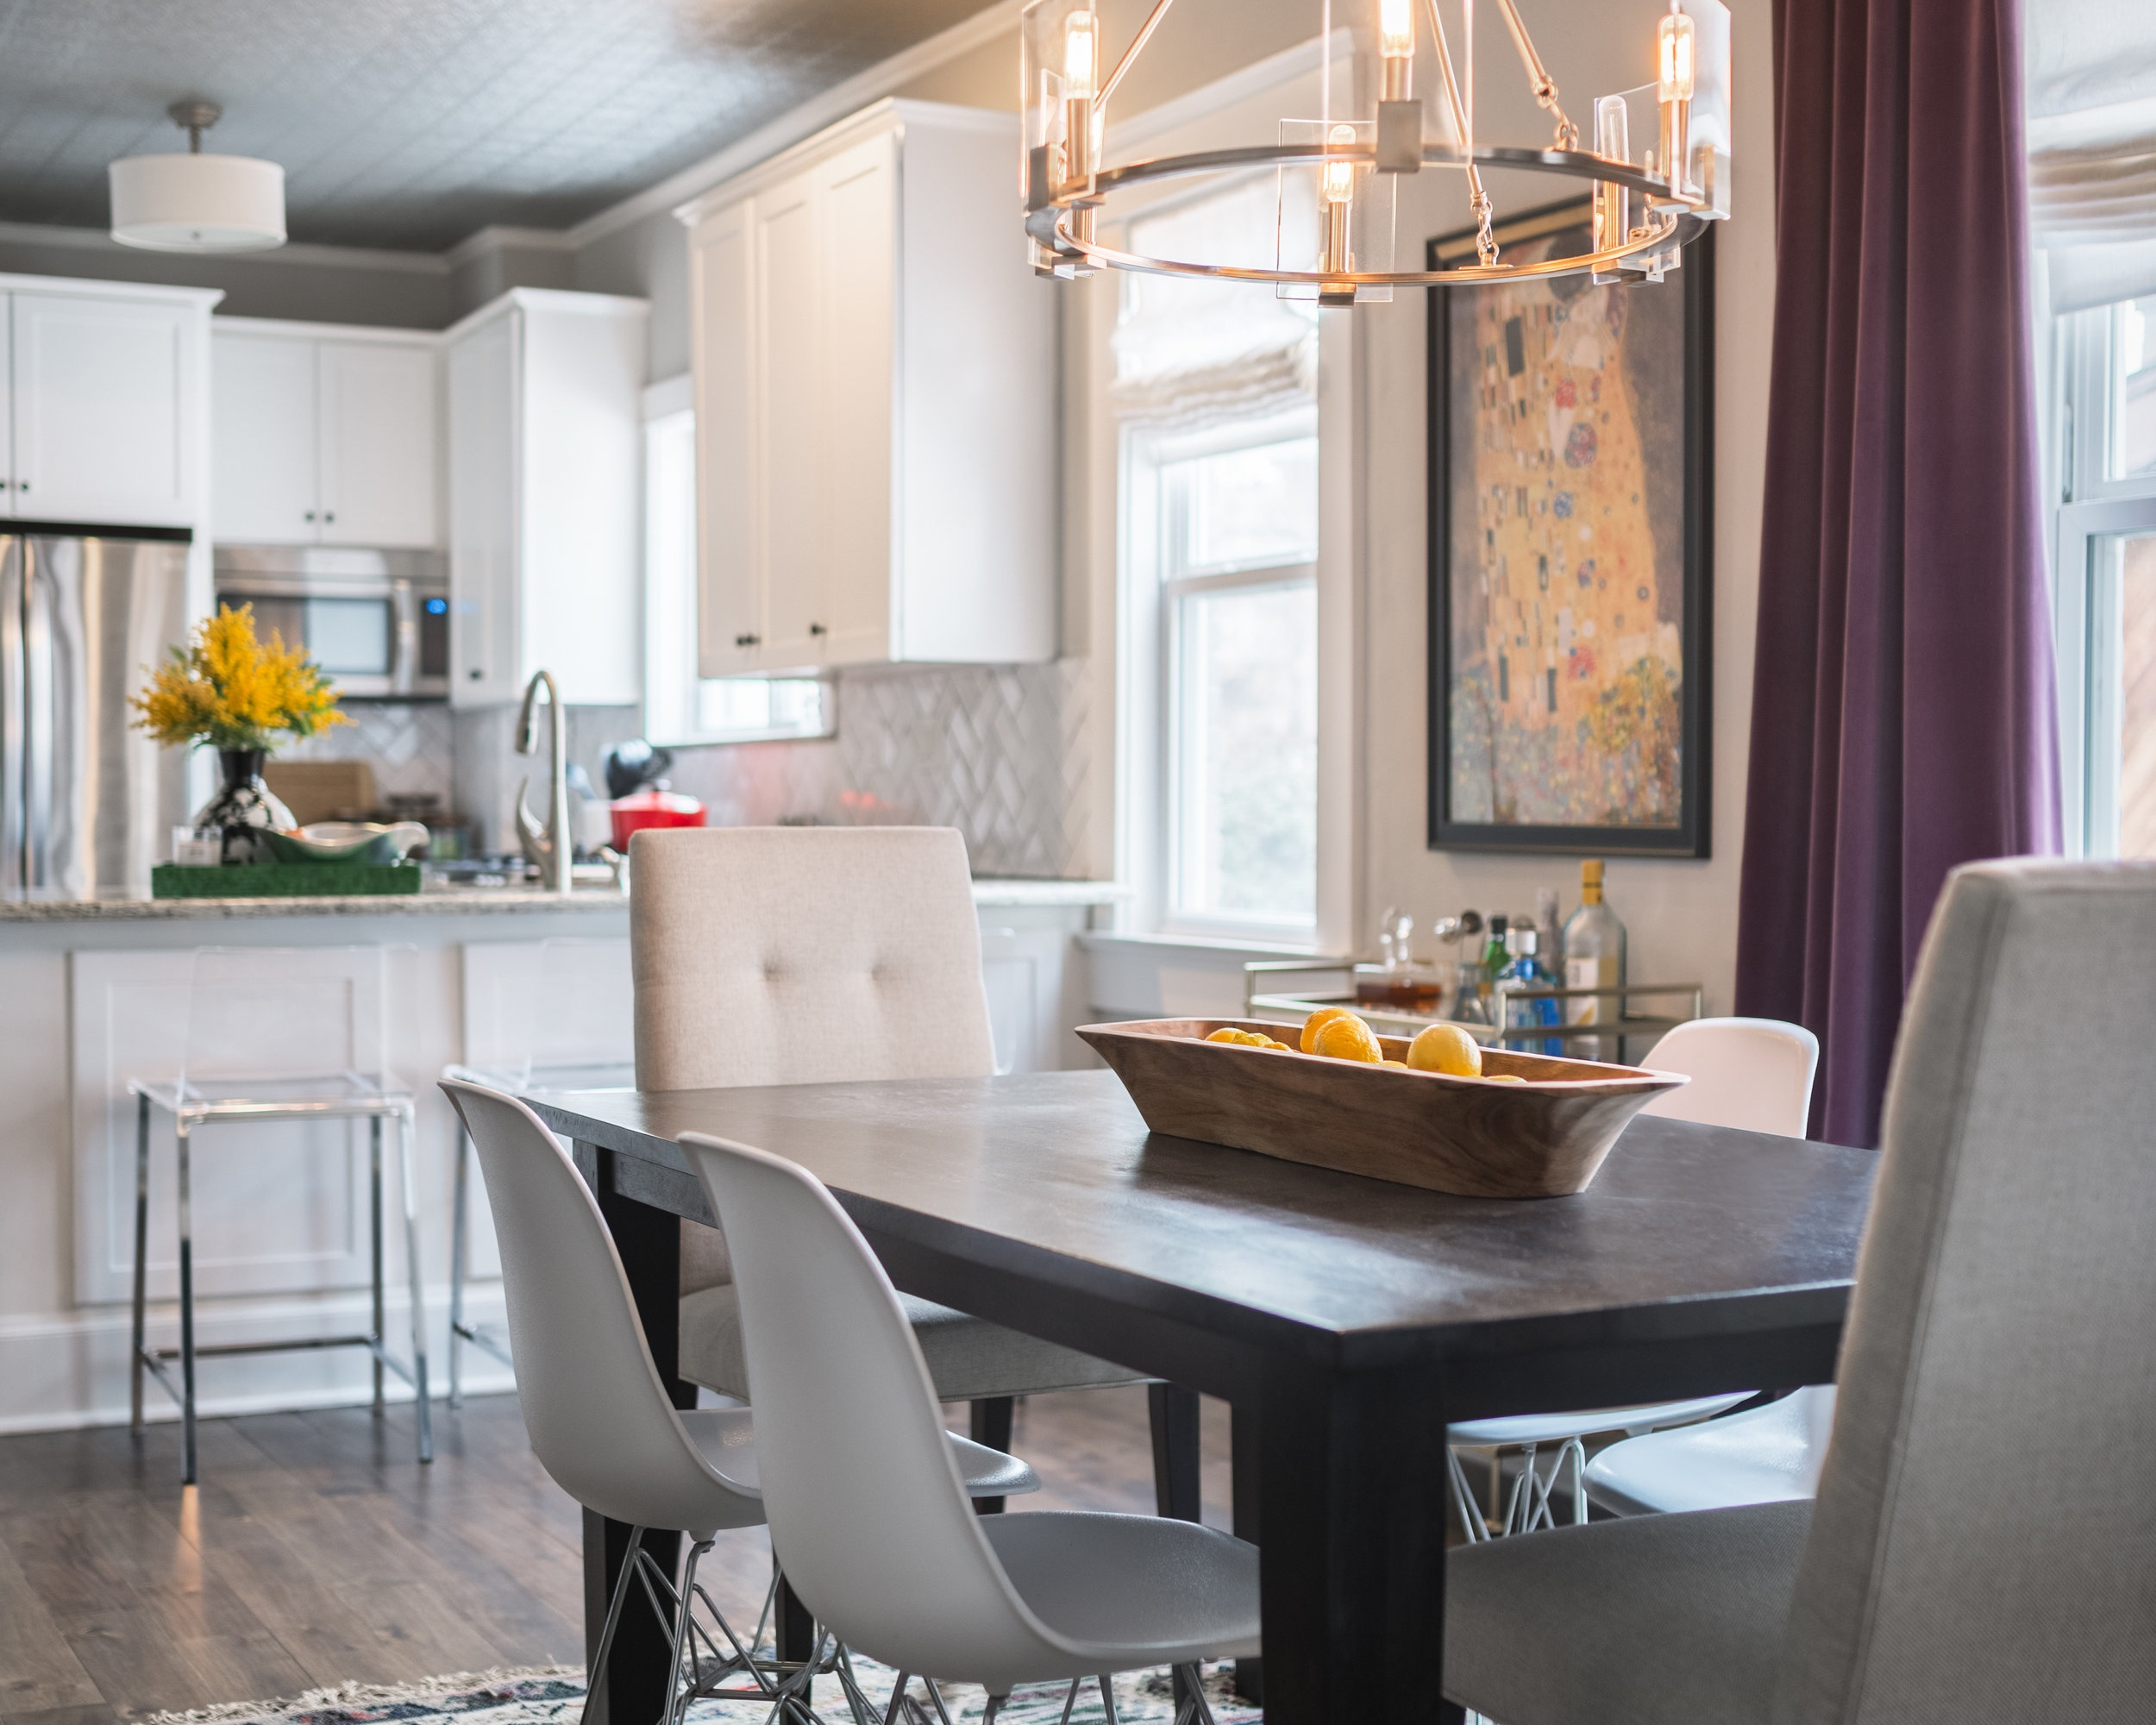 WASH PARK RESIDENCE - A quaint duplex remodel designed to highlight it's unique characteristics and the owner's eclectic style.